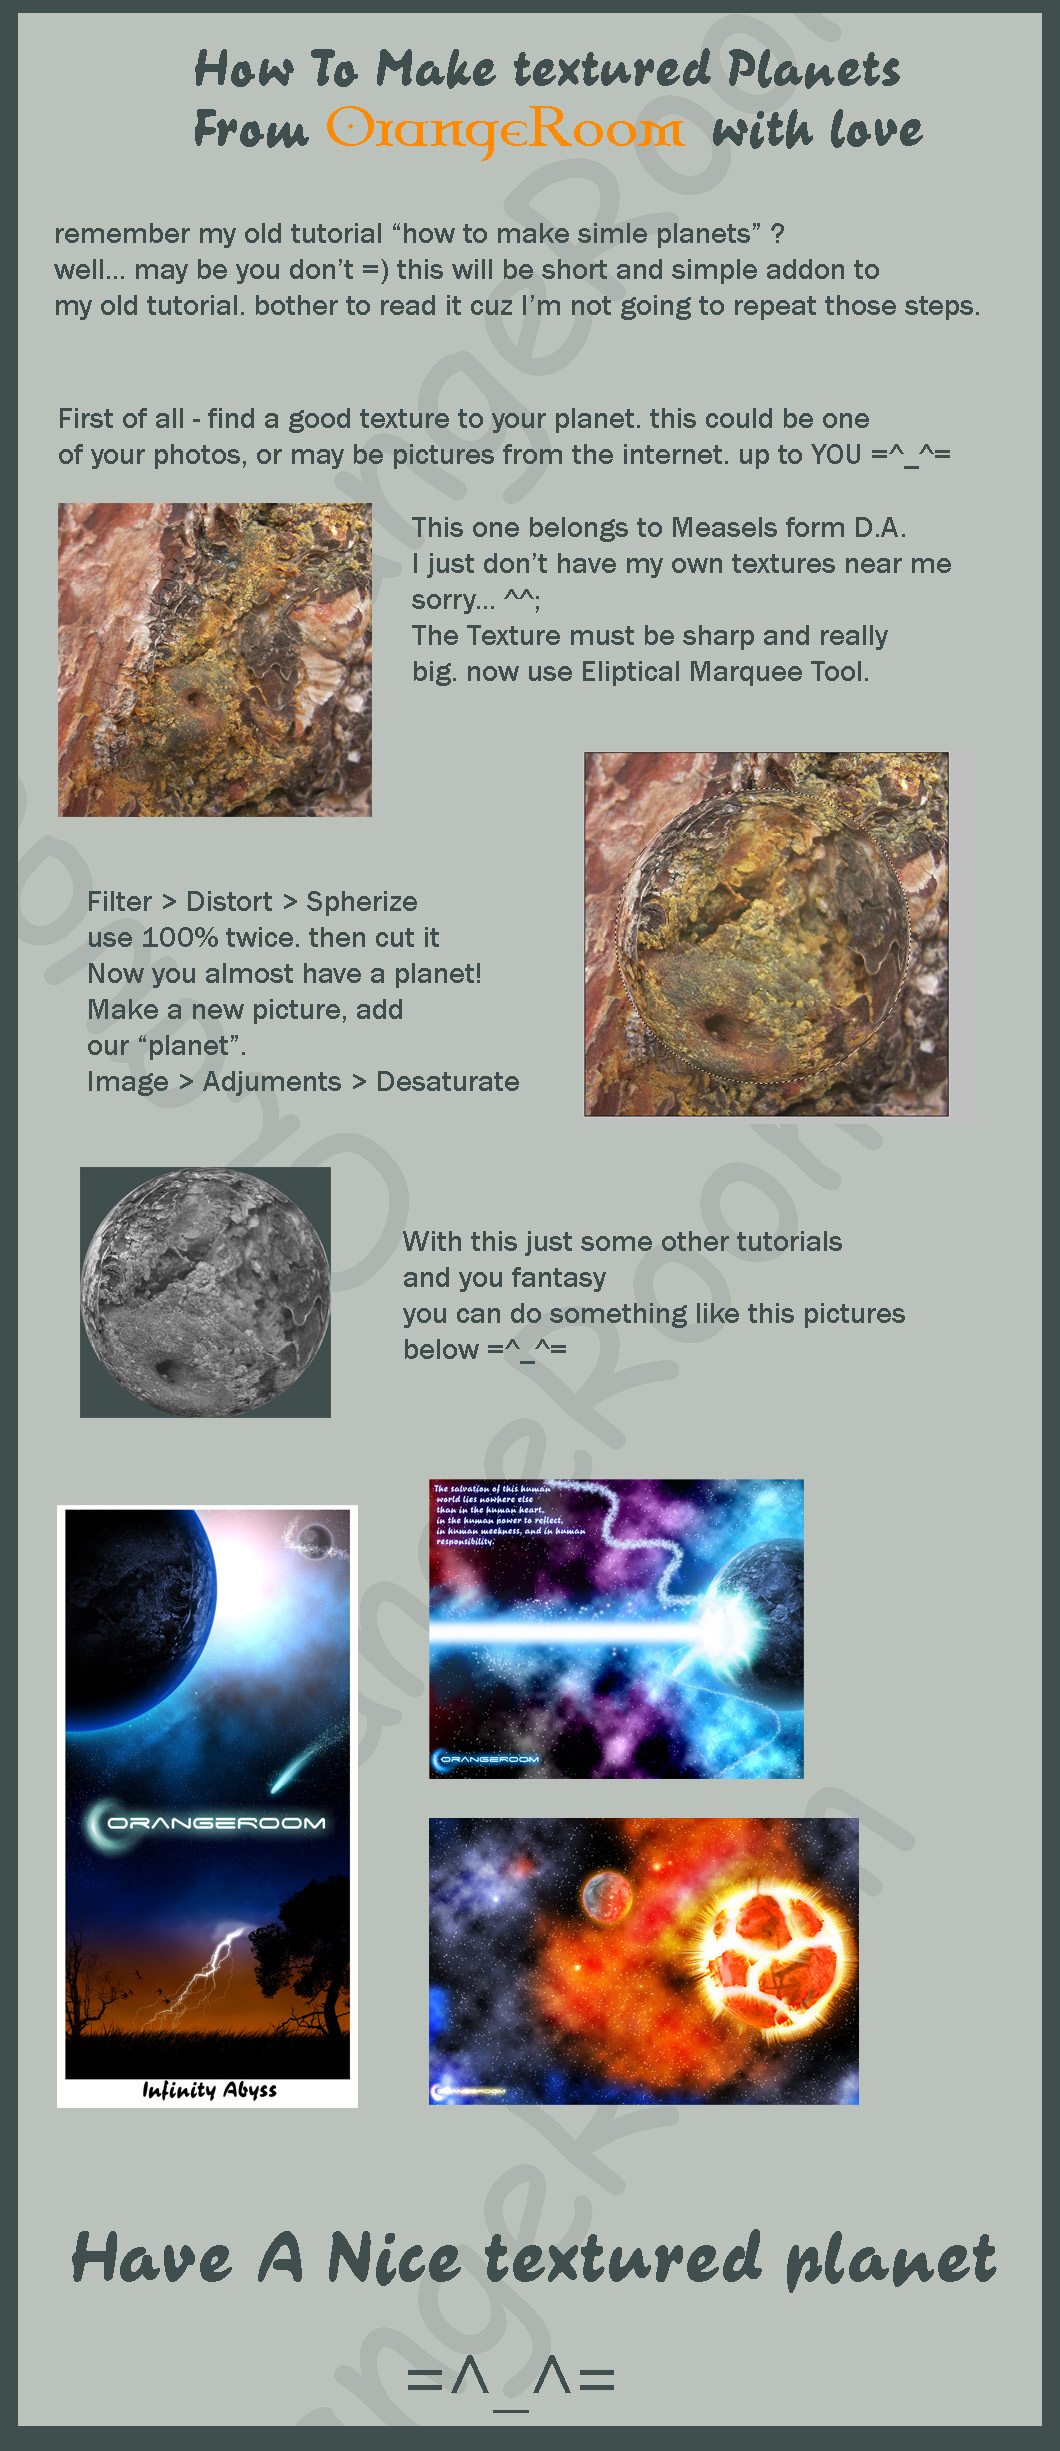 Textured Planets tutorial by OrangeRoom